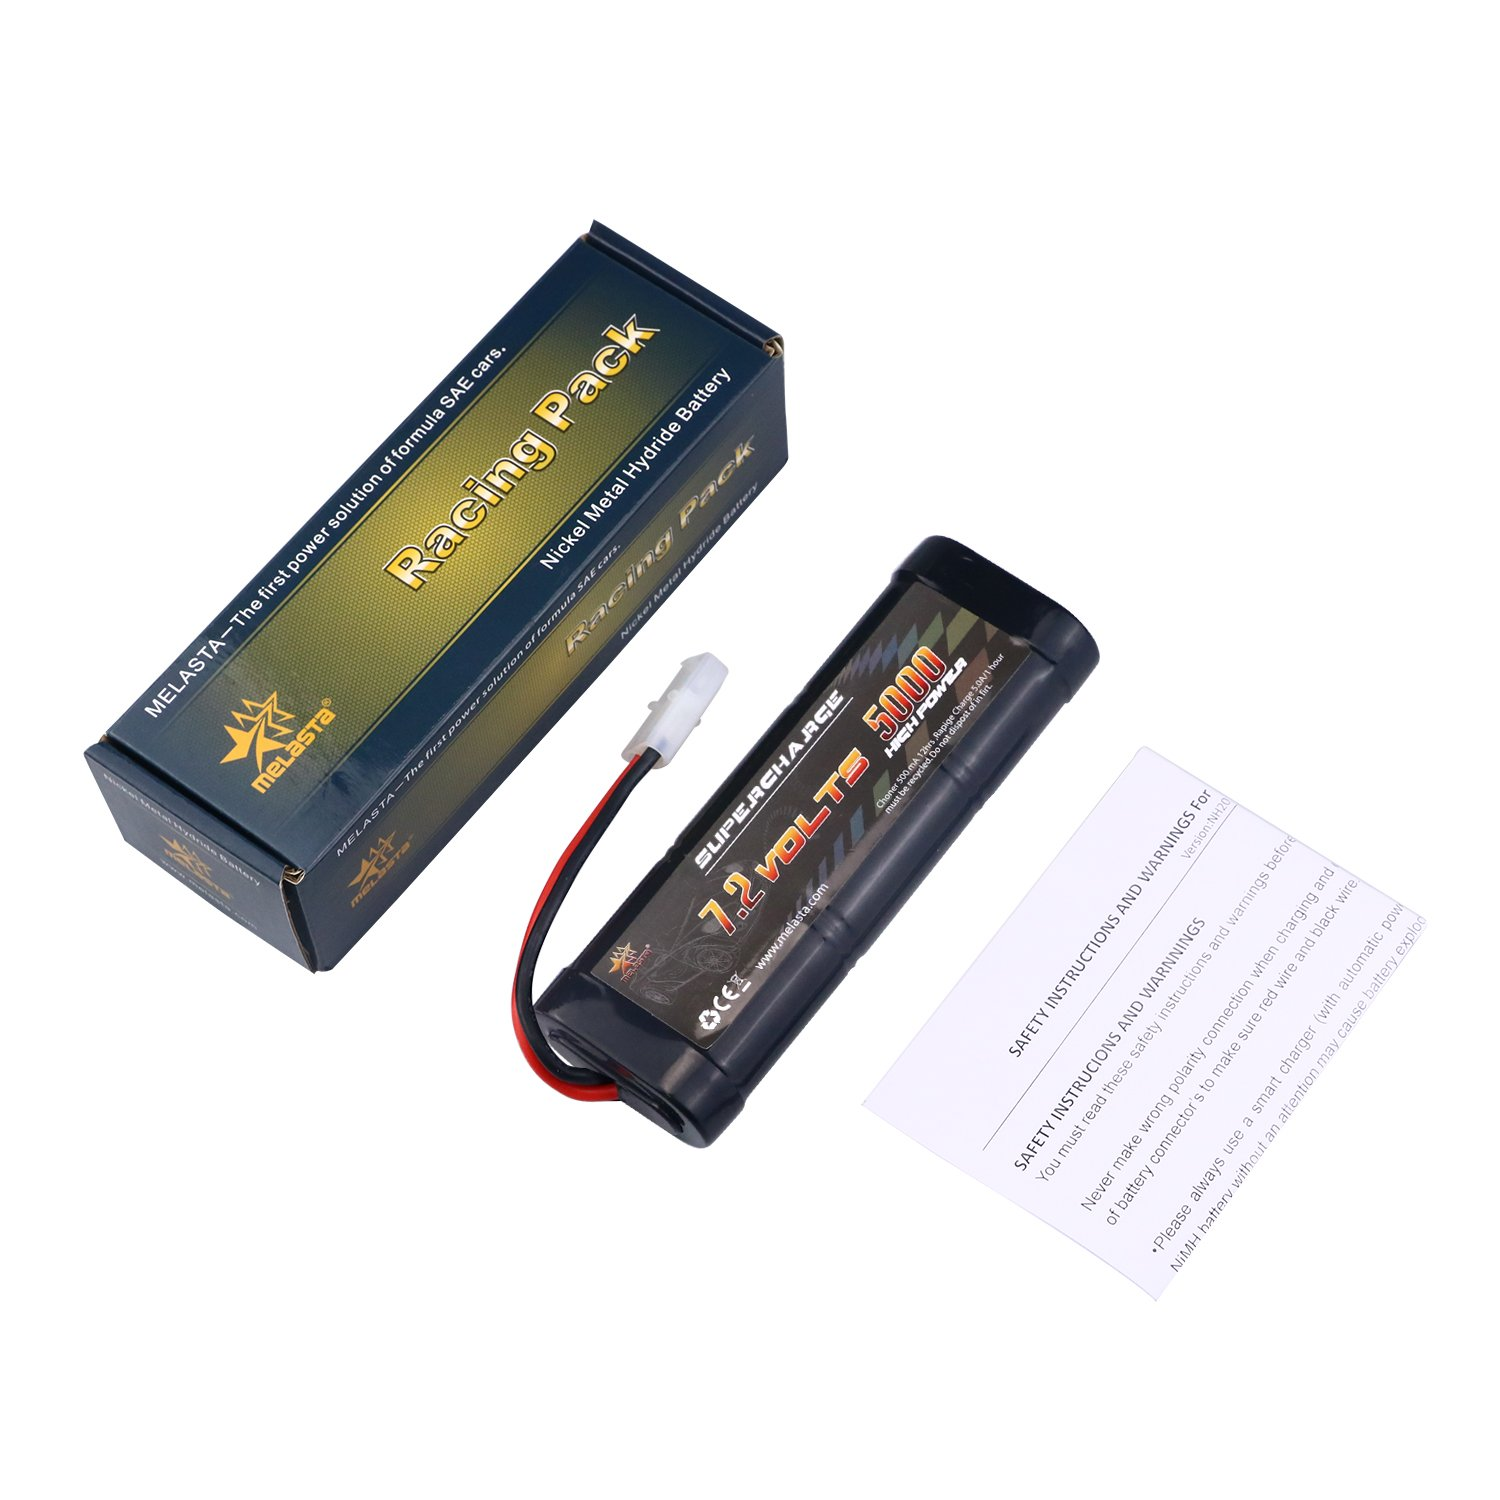 Melasta 7.2V 5000mAh Ni-MH High Power Battery Packs with Tamiya Discharge Connector for RC Racing Cars Boat Aircraft melasta corporation Limited RC72-50NH